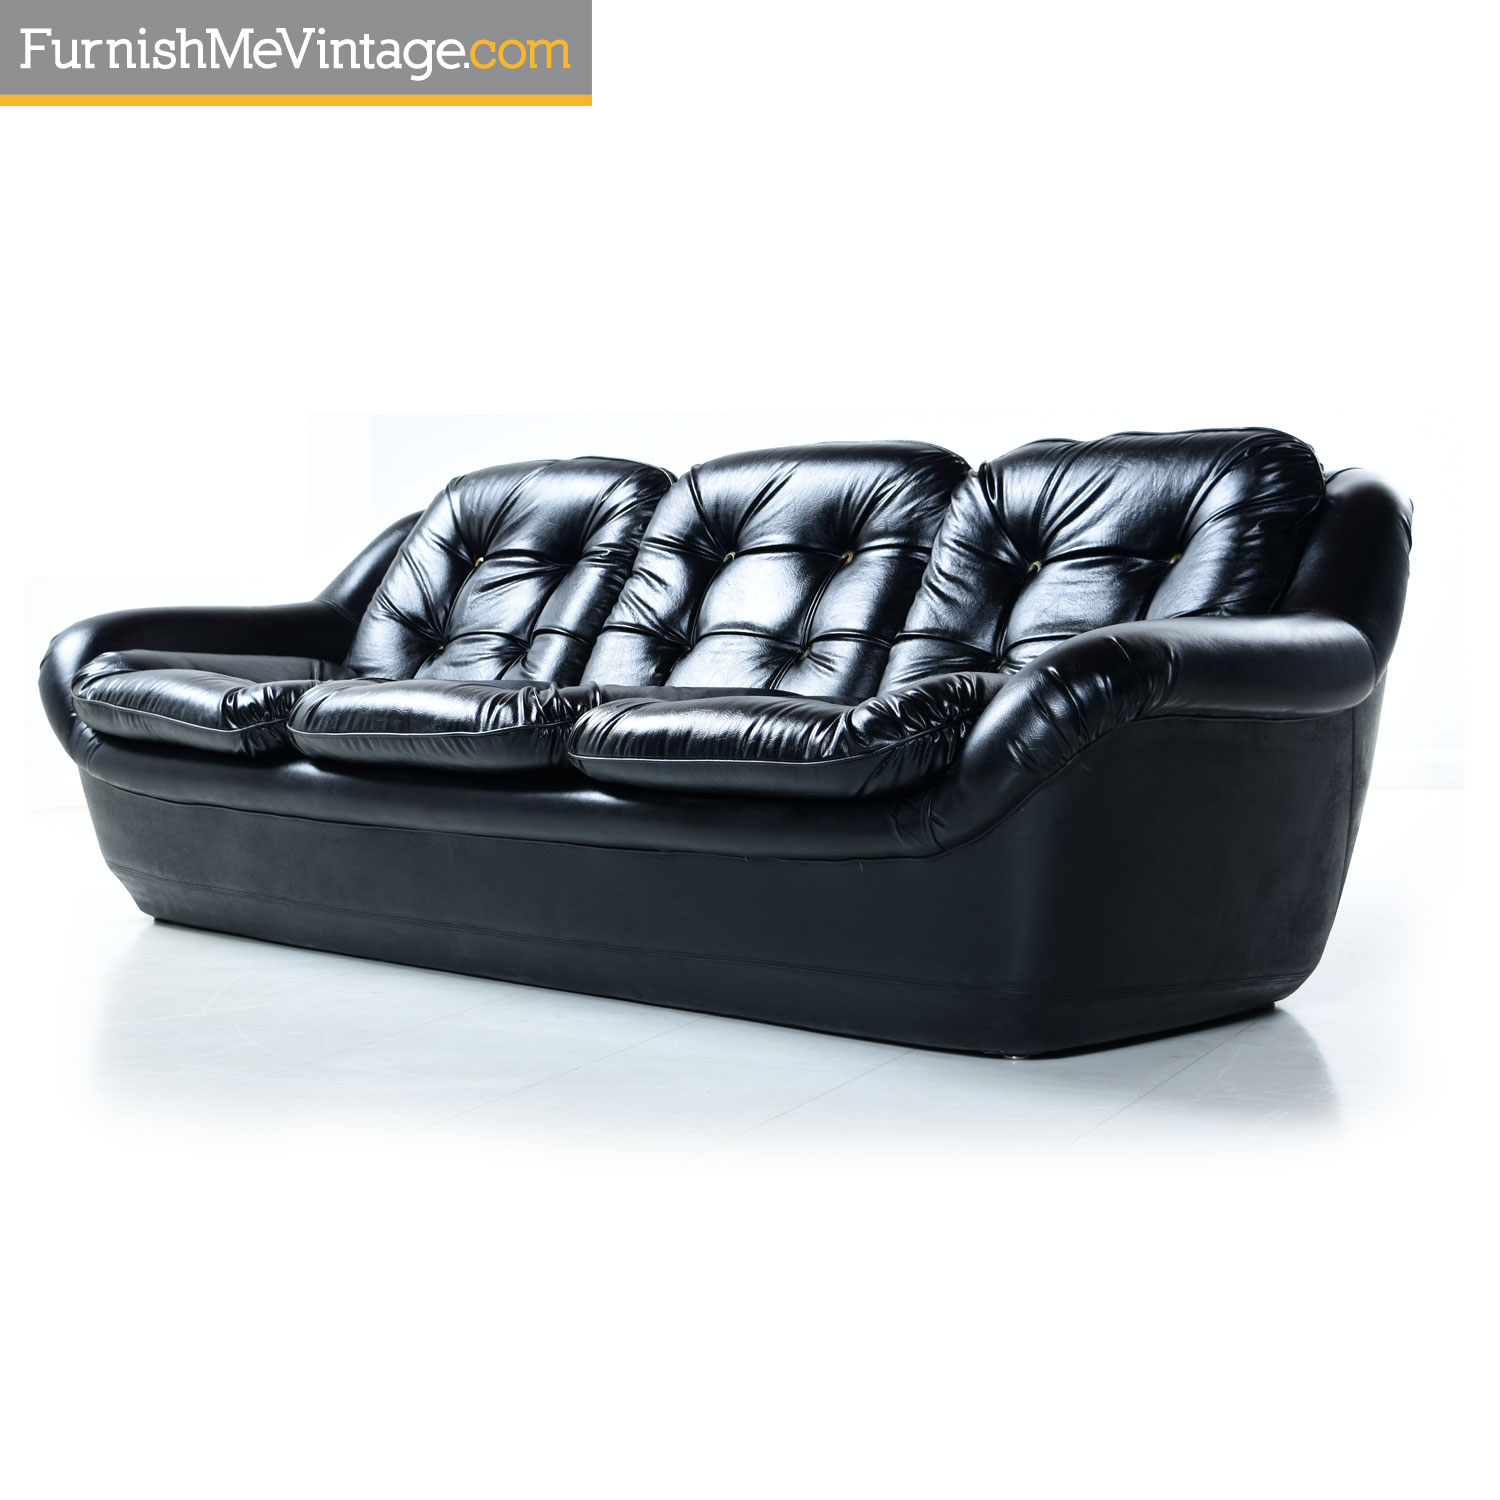 Black Vinyl Tufted Mid Century Modern Sofa With Chorded Buttons